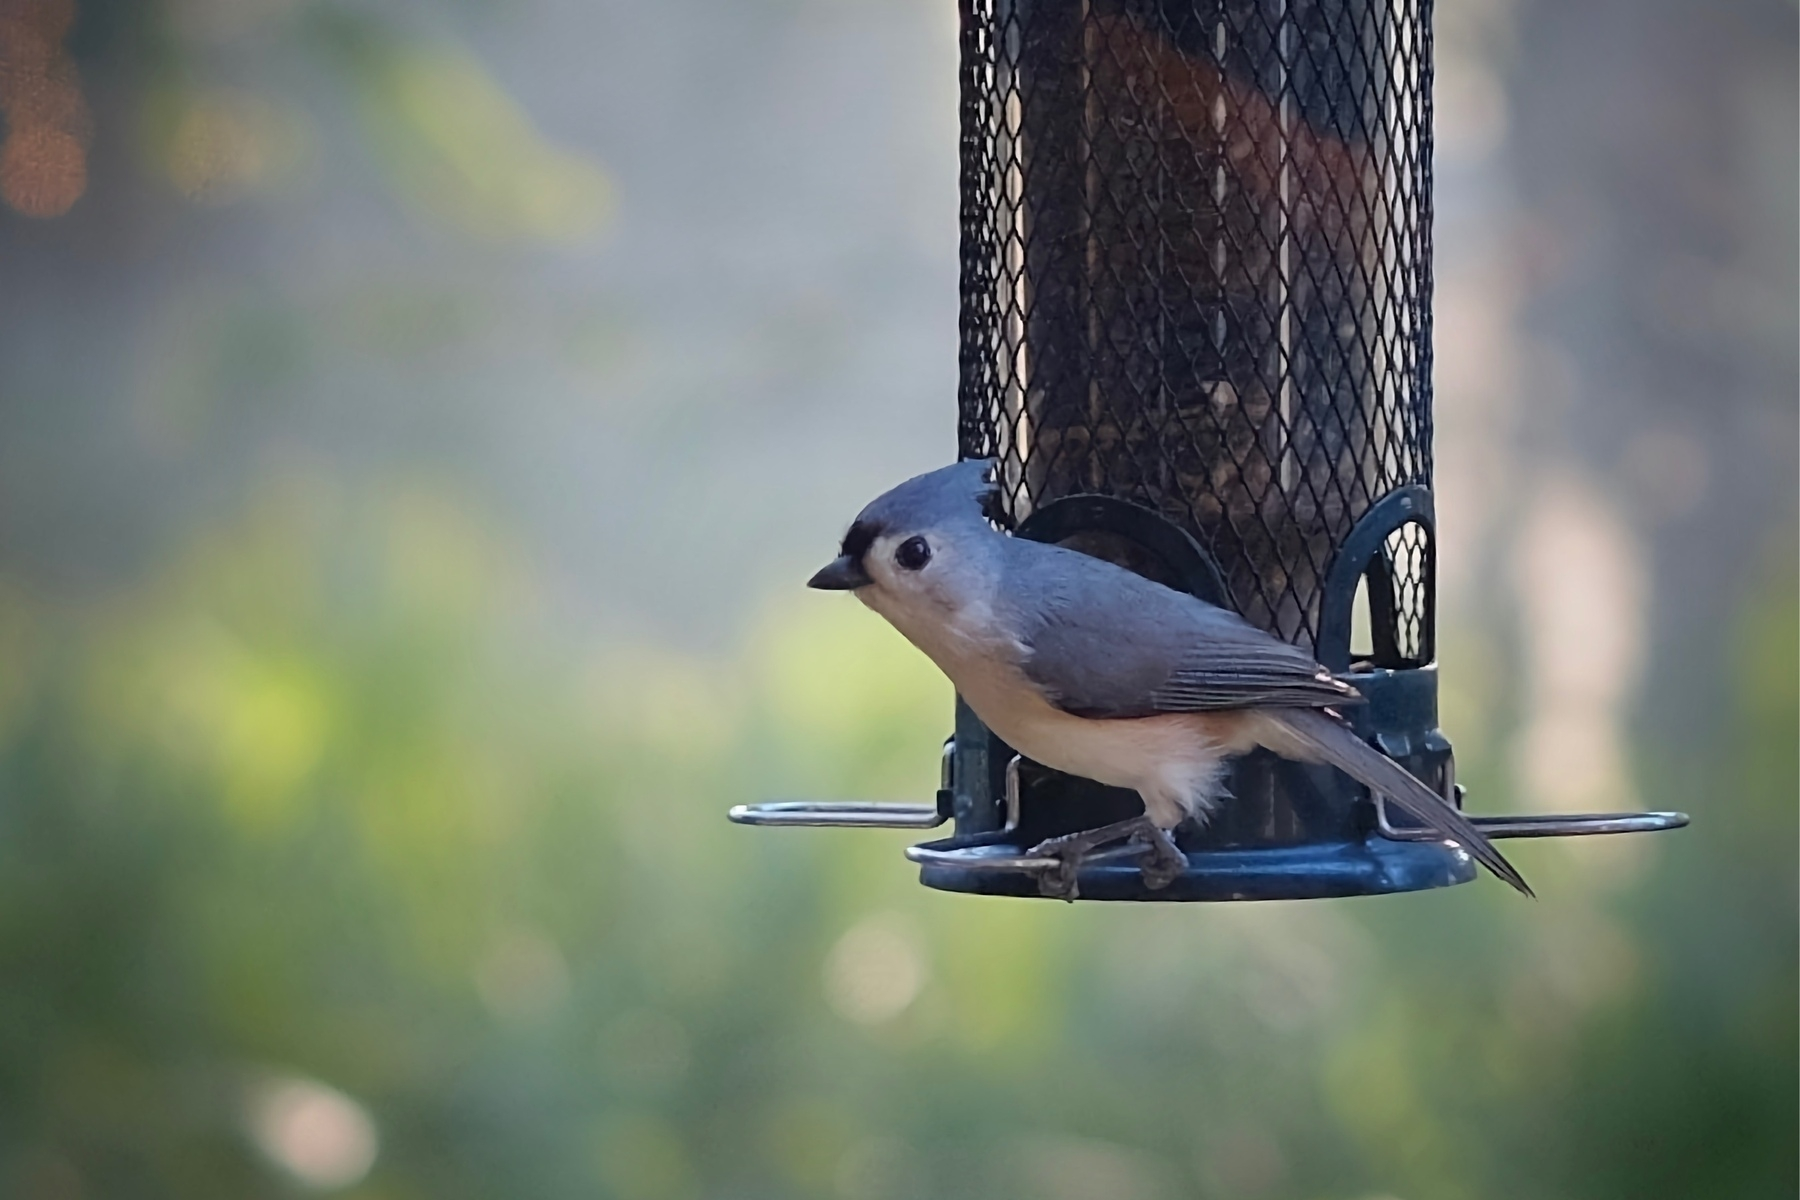 Titmouse bird standing at seed feeder